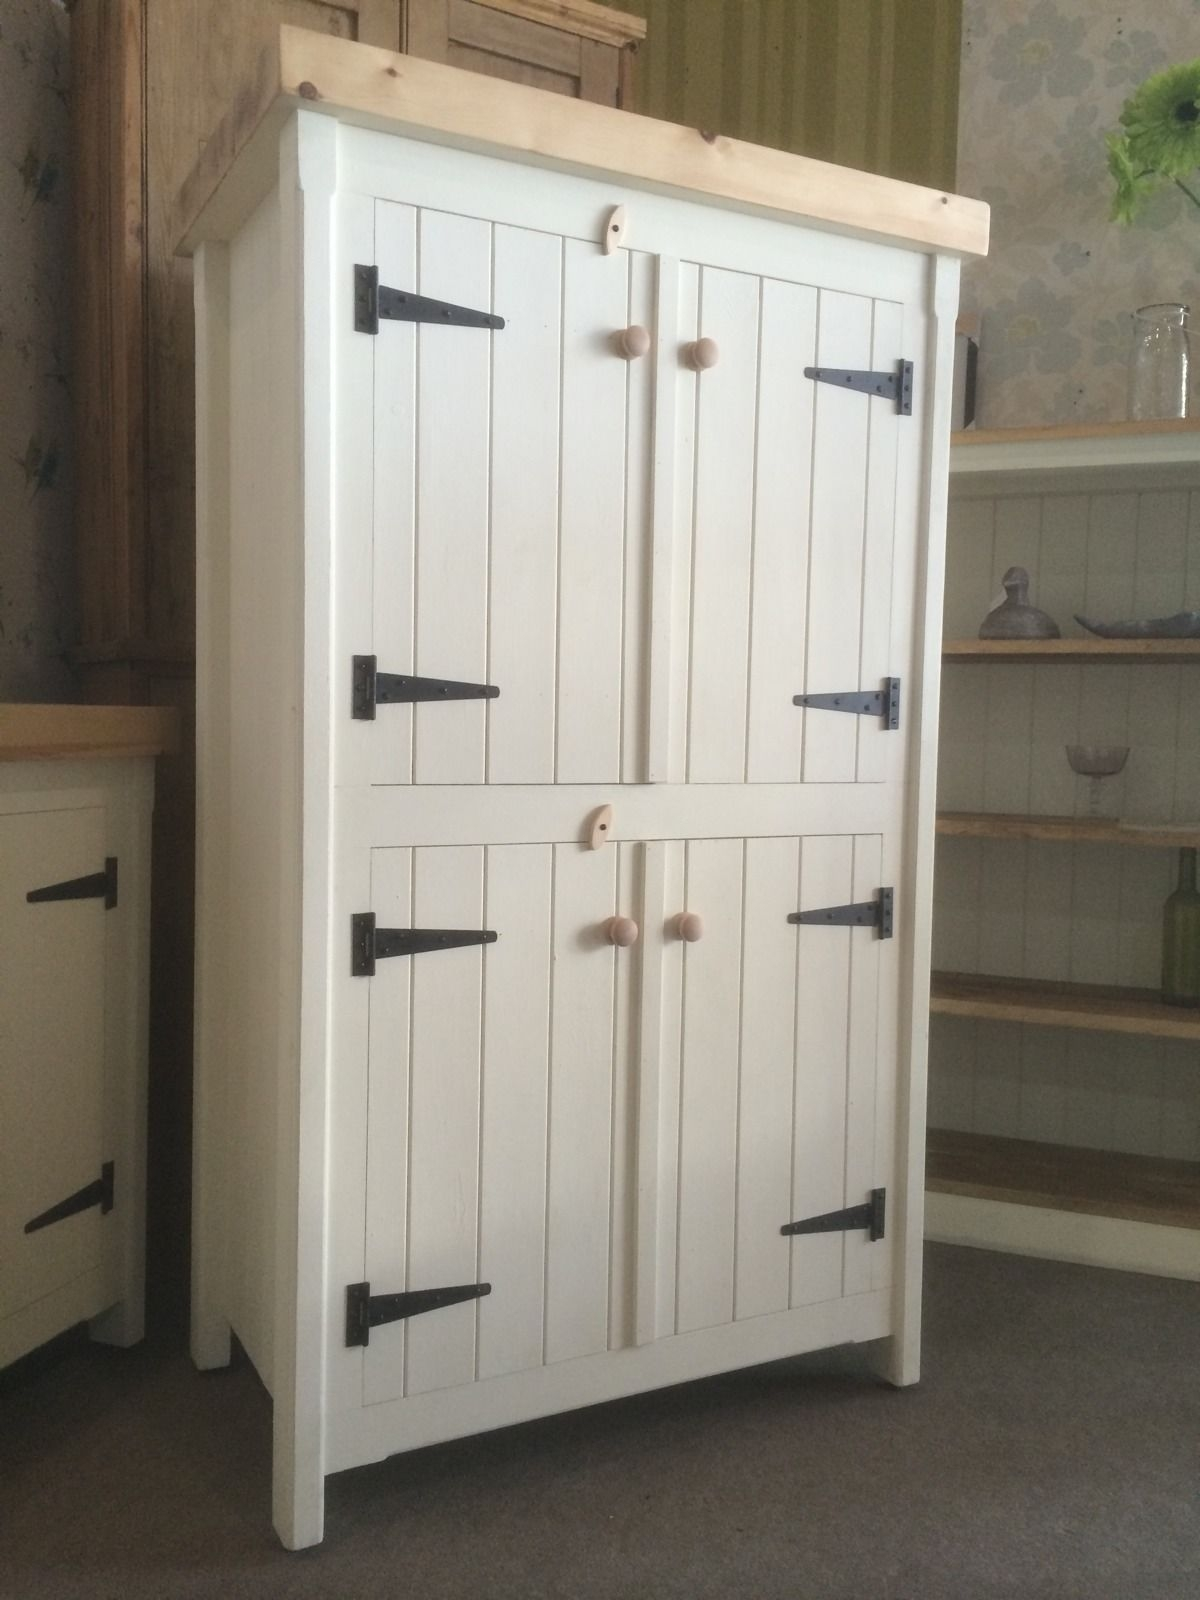 Rustic Wooden Pine Freestanding Kitchen Handmade Cupboard Unit Within Handmade Cupboards (Image 15 of 15)